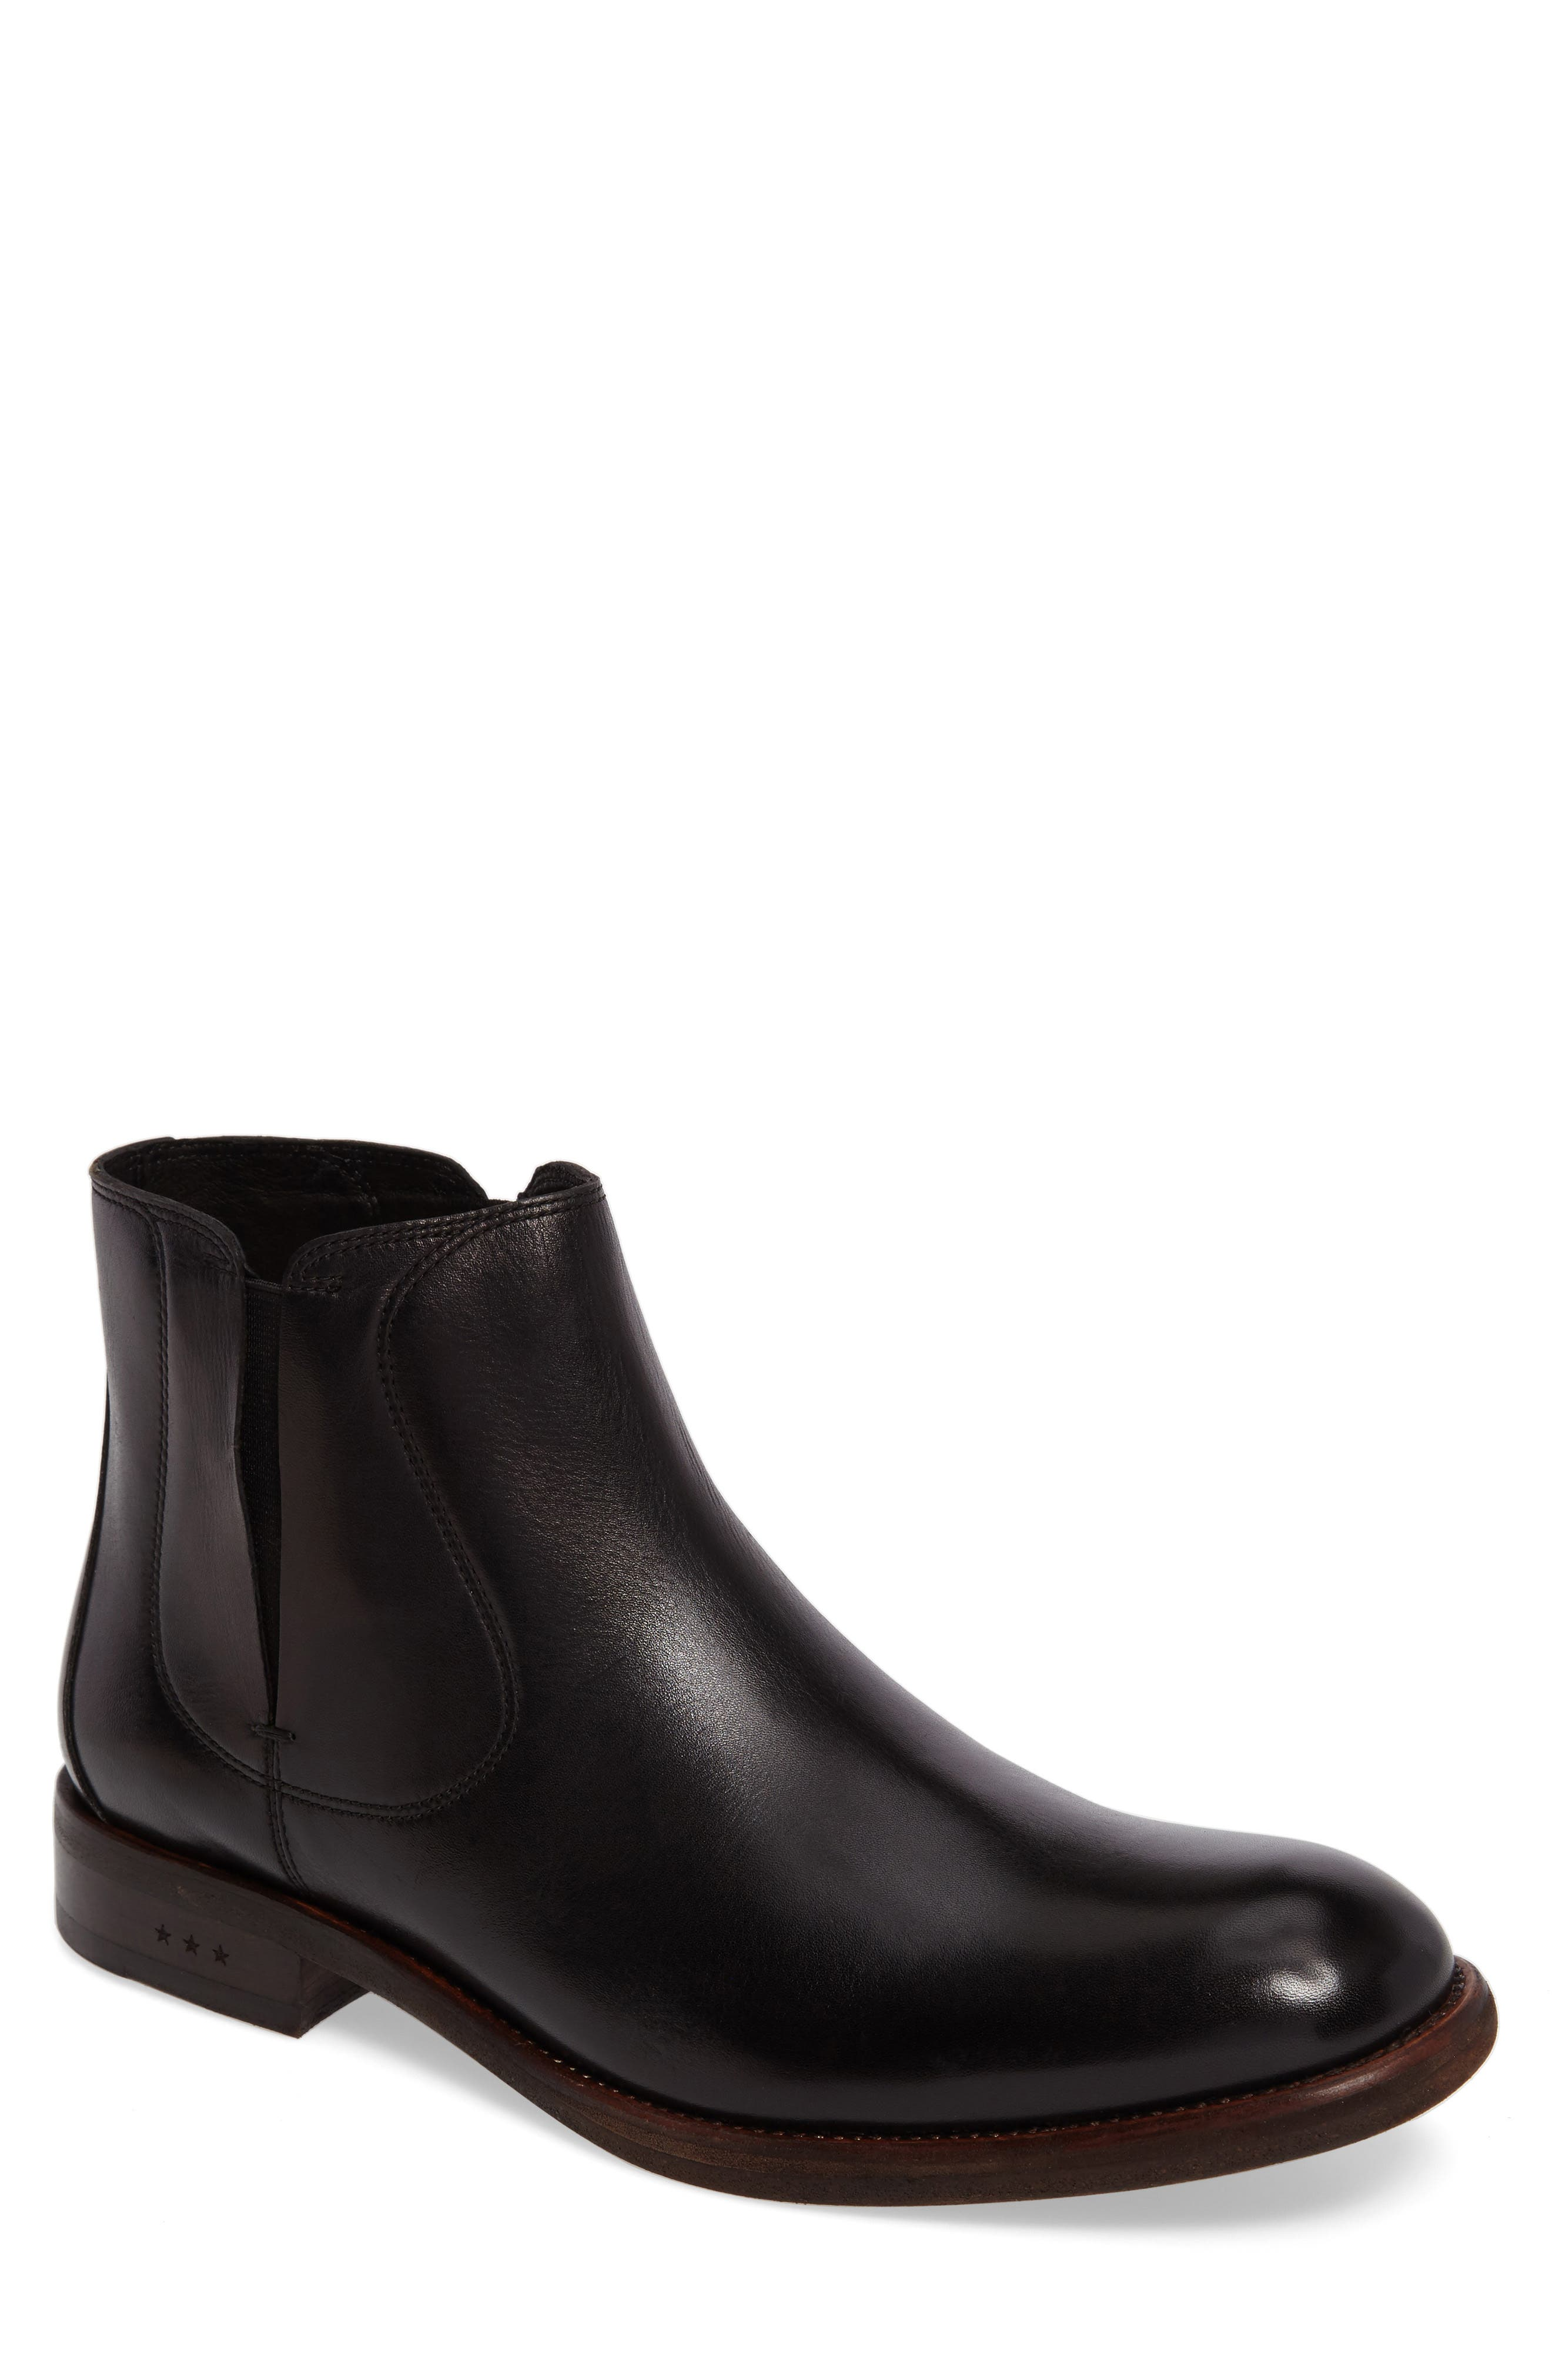 Waverley Chelsea Boot,                             Main thumbnail 1, color,                             BLACK LEATHER